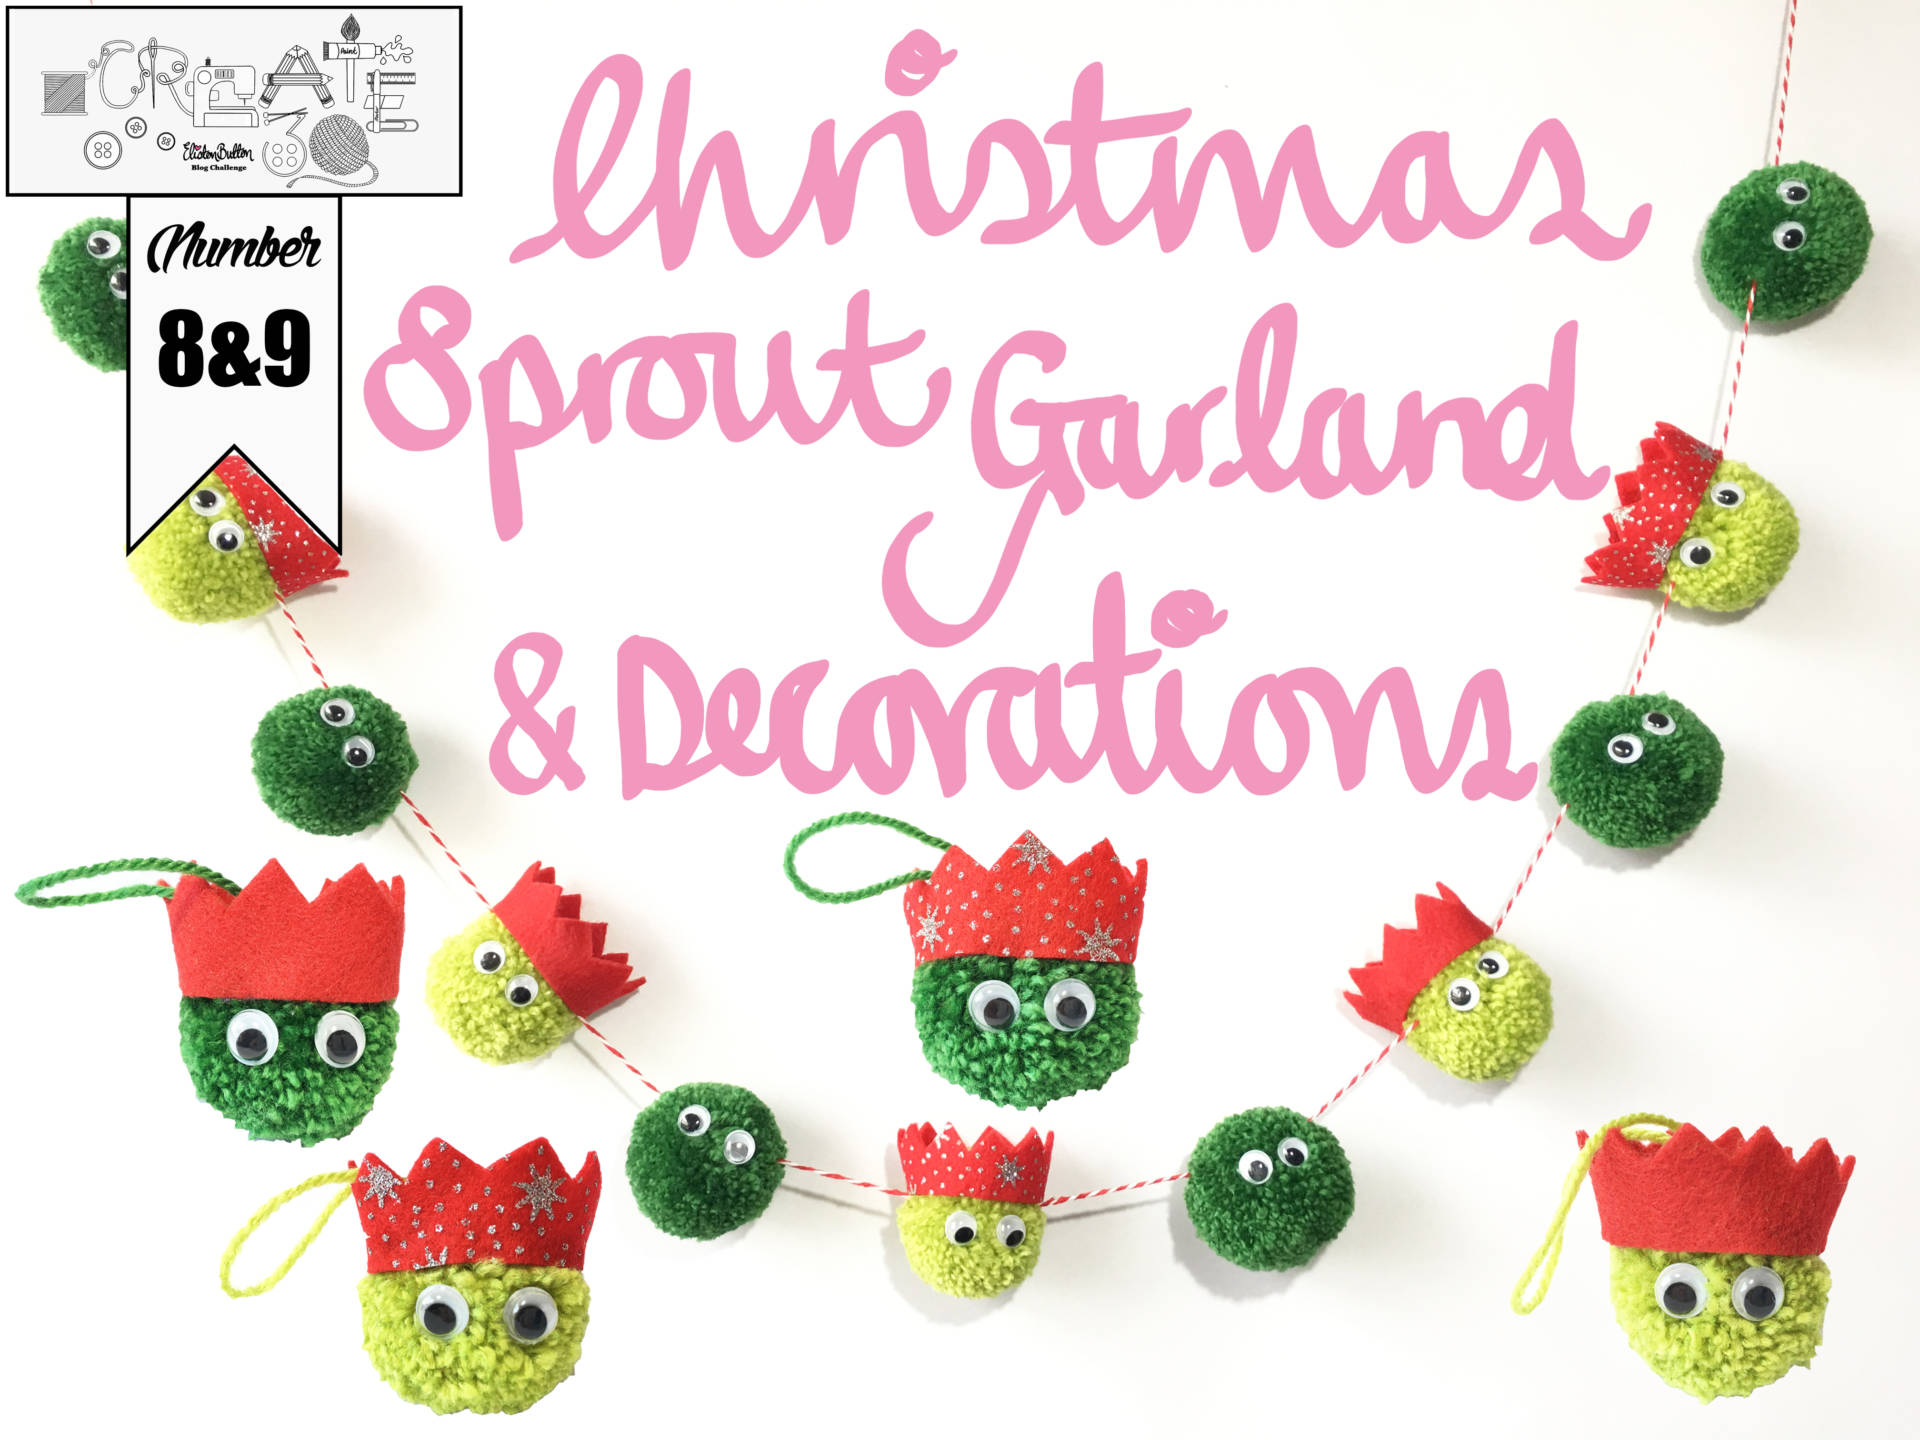 Christmas Sprout Garland and Decorations - Create 30 - No. 8 & 9 - Christmas Sprout Garland and Decorations at www.elistonbutton.com - Eliston Button - That Crafty Kid – Art, Design, Craft & Adventure.